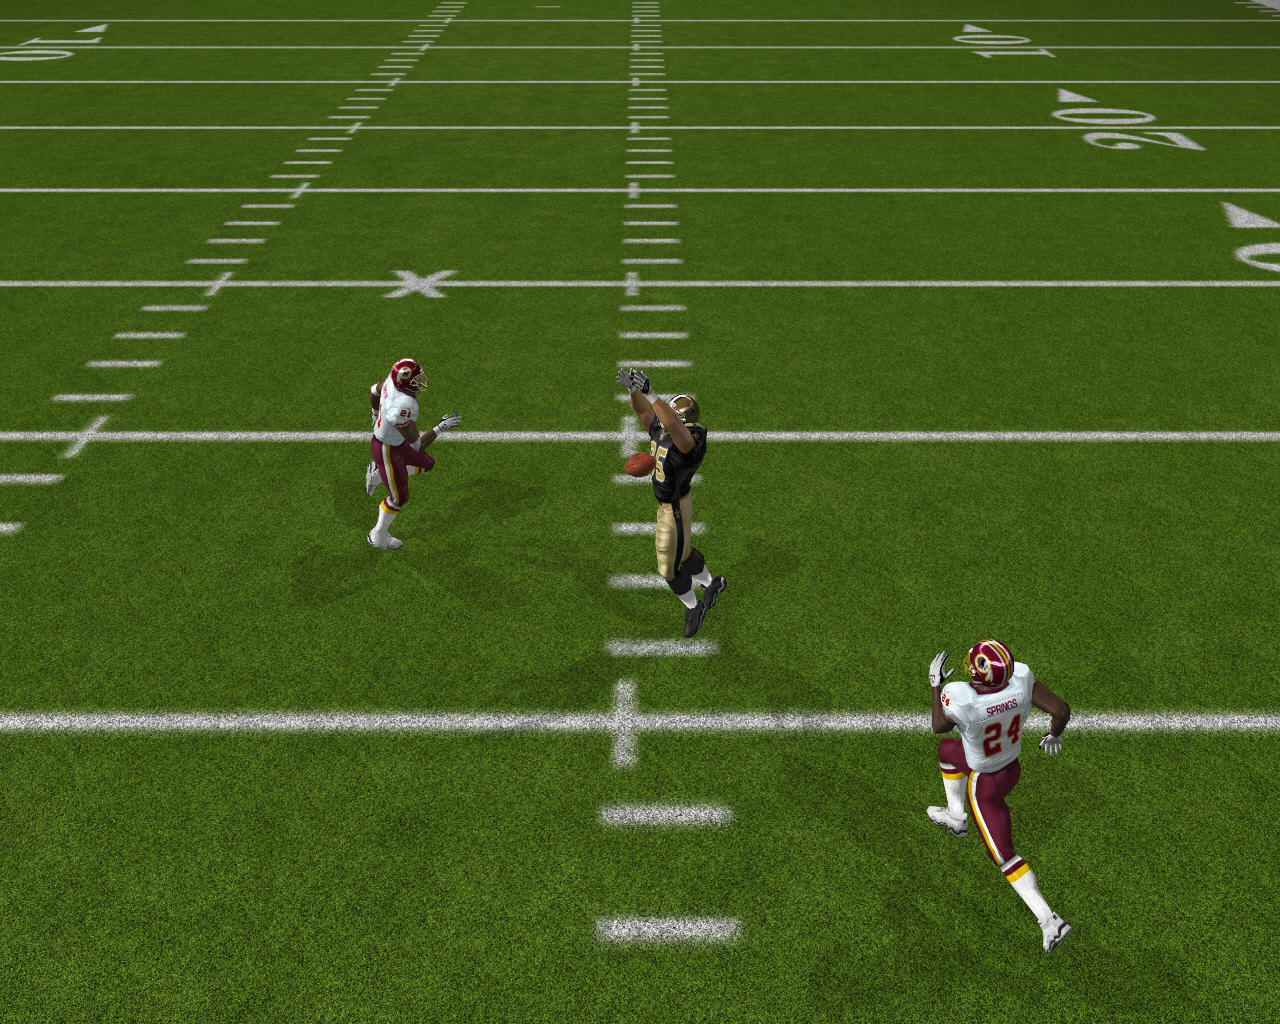 Madden NFL 07 Windows Player fails to catch the ball.